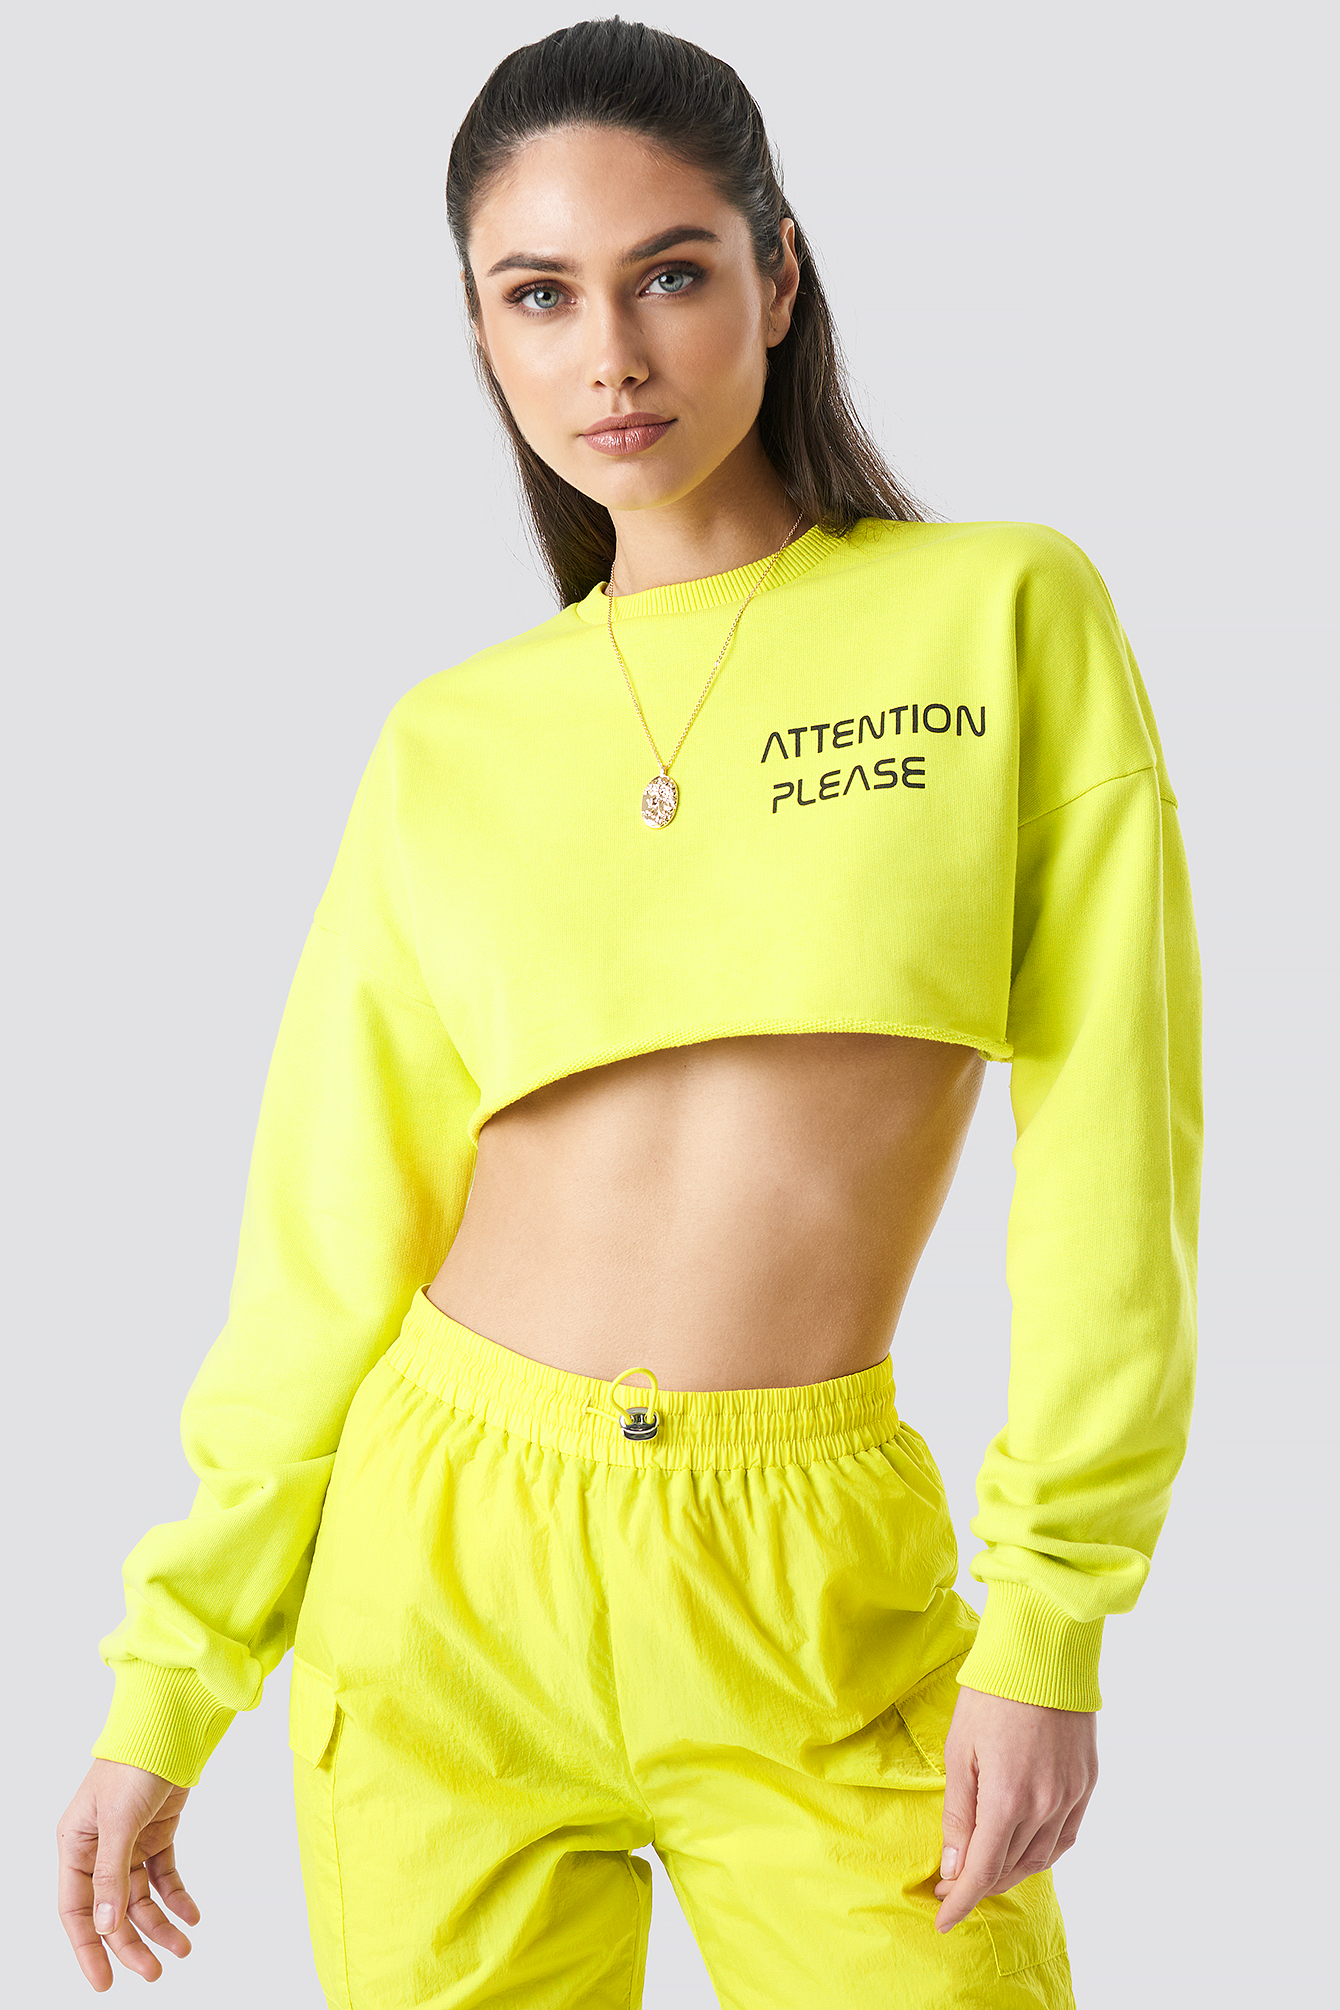 Attention Please Raw Cropped Sweater NA-KDLOUNGE.DE